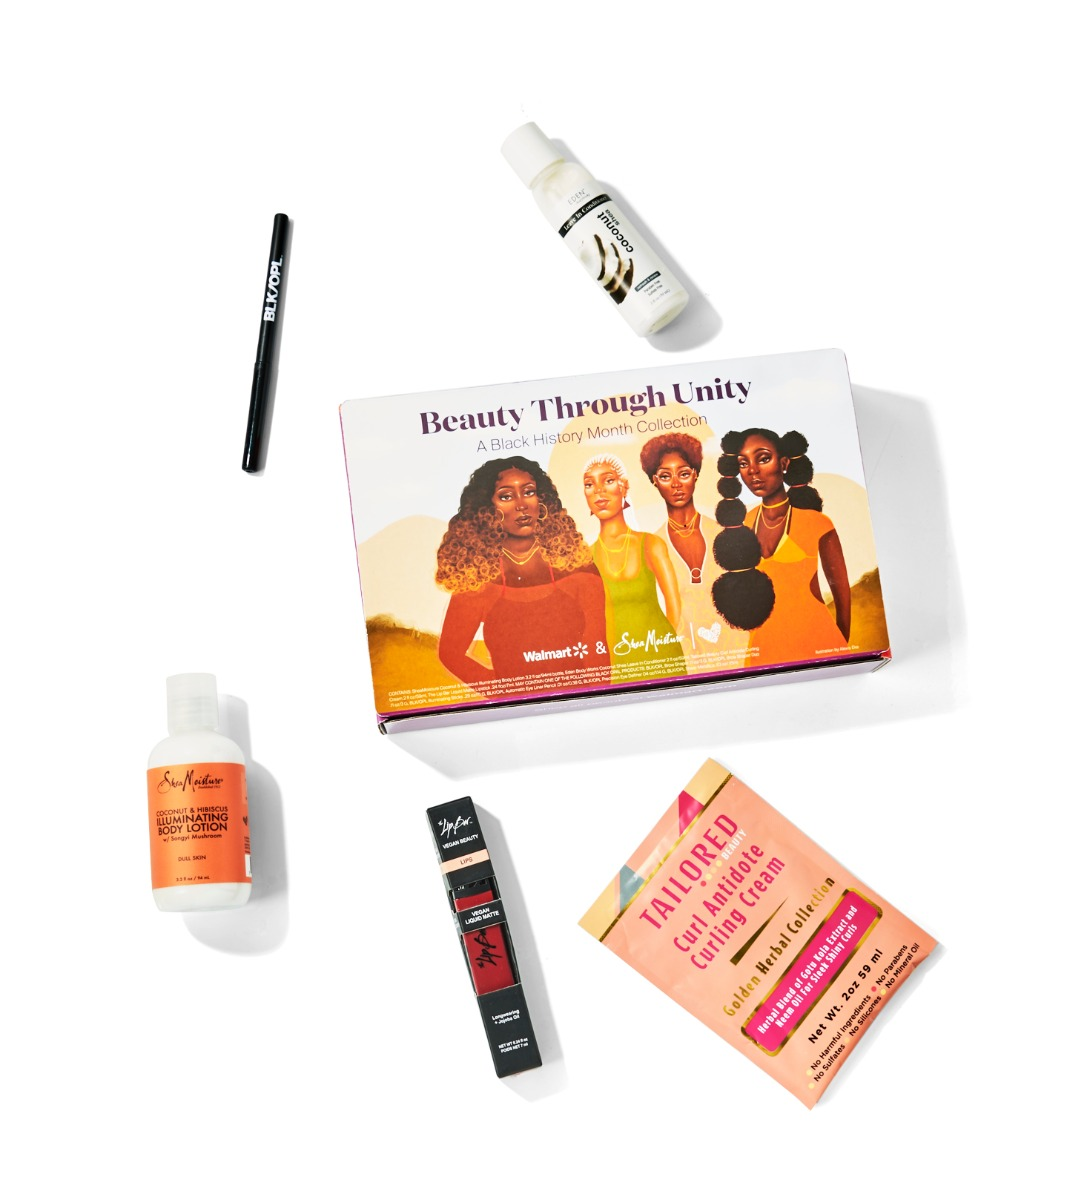 Beauty Through Unity – A Black History Month Collection